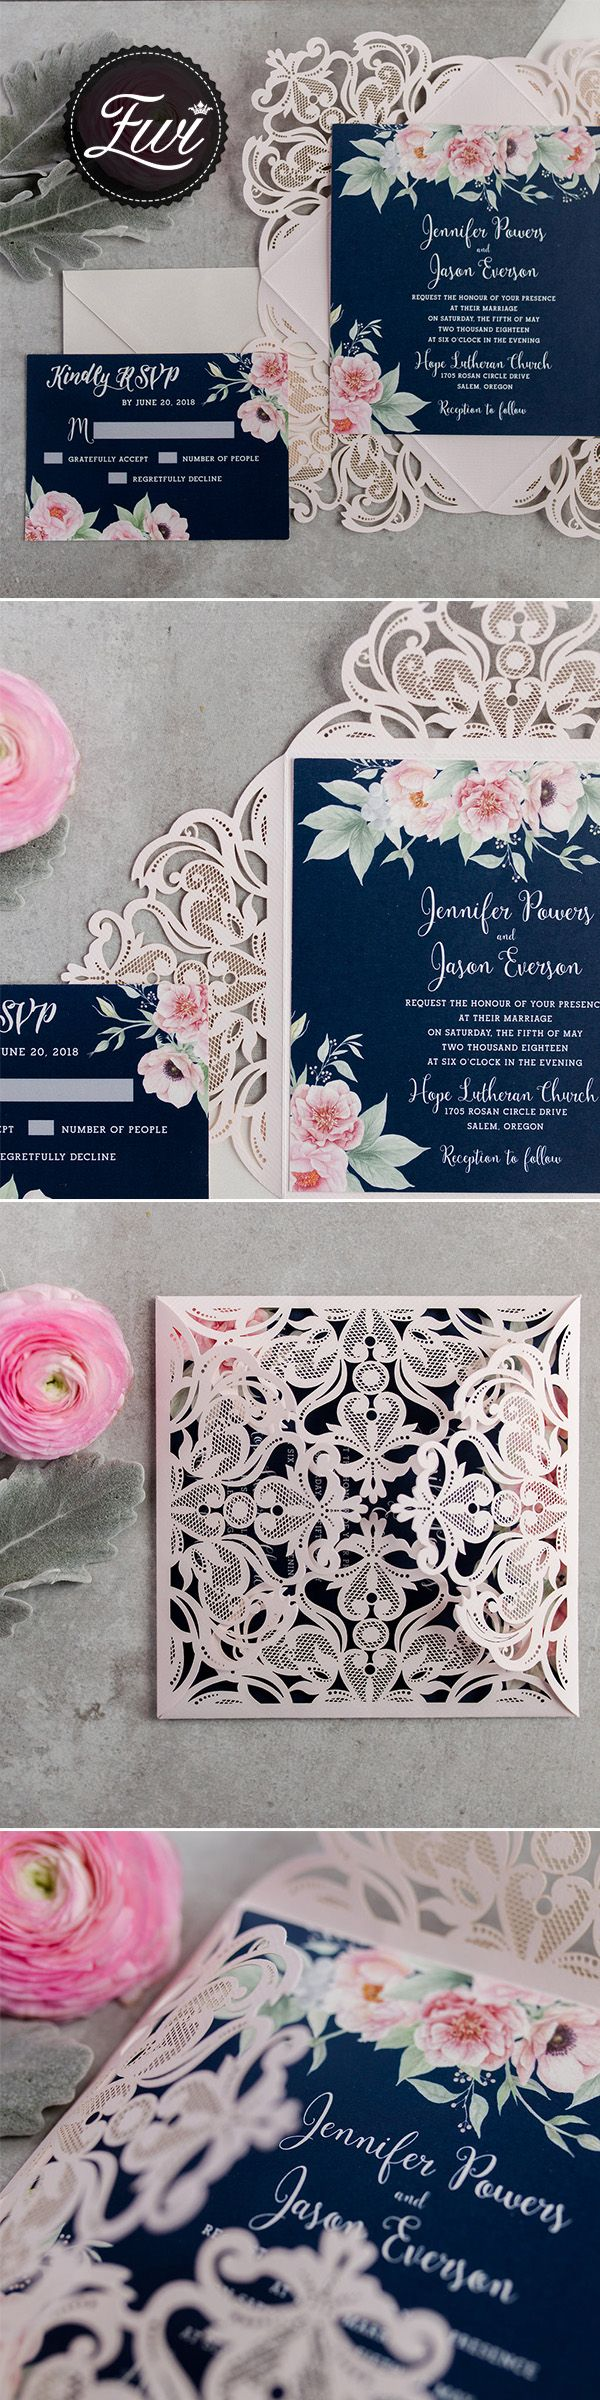 86 Best Wedding Invitations Images On Pinterest Invitations